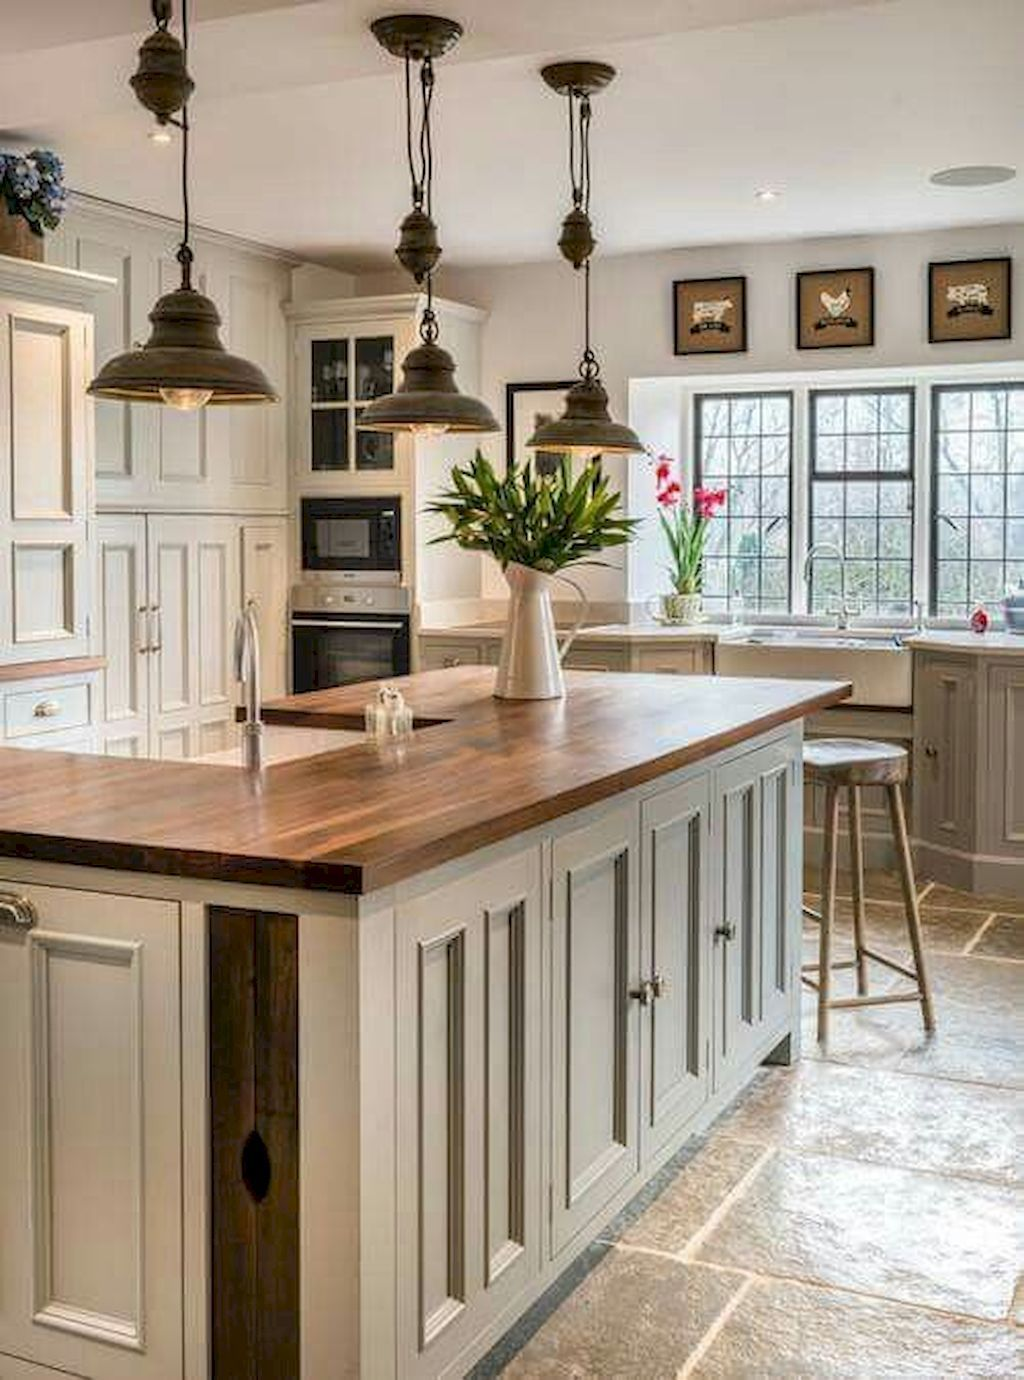 10 Kitchen And Home Decor Items Every 20 Something Needs: 40 Rustic Modern Farmhouse Kitchen Design Ideas